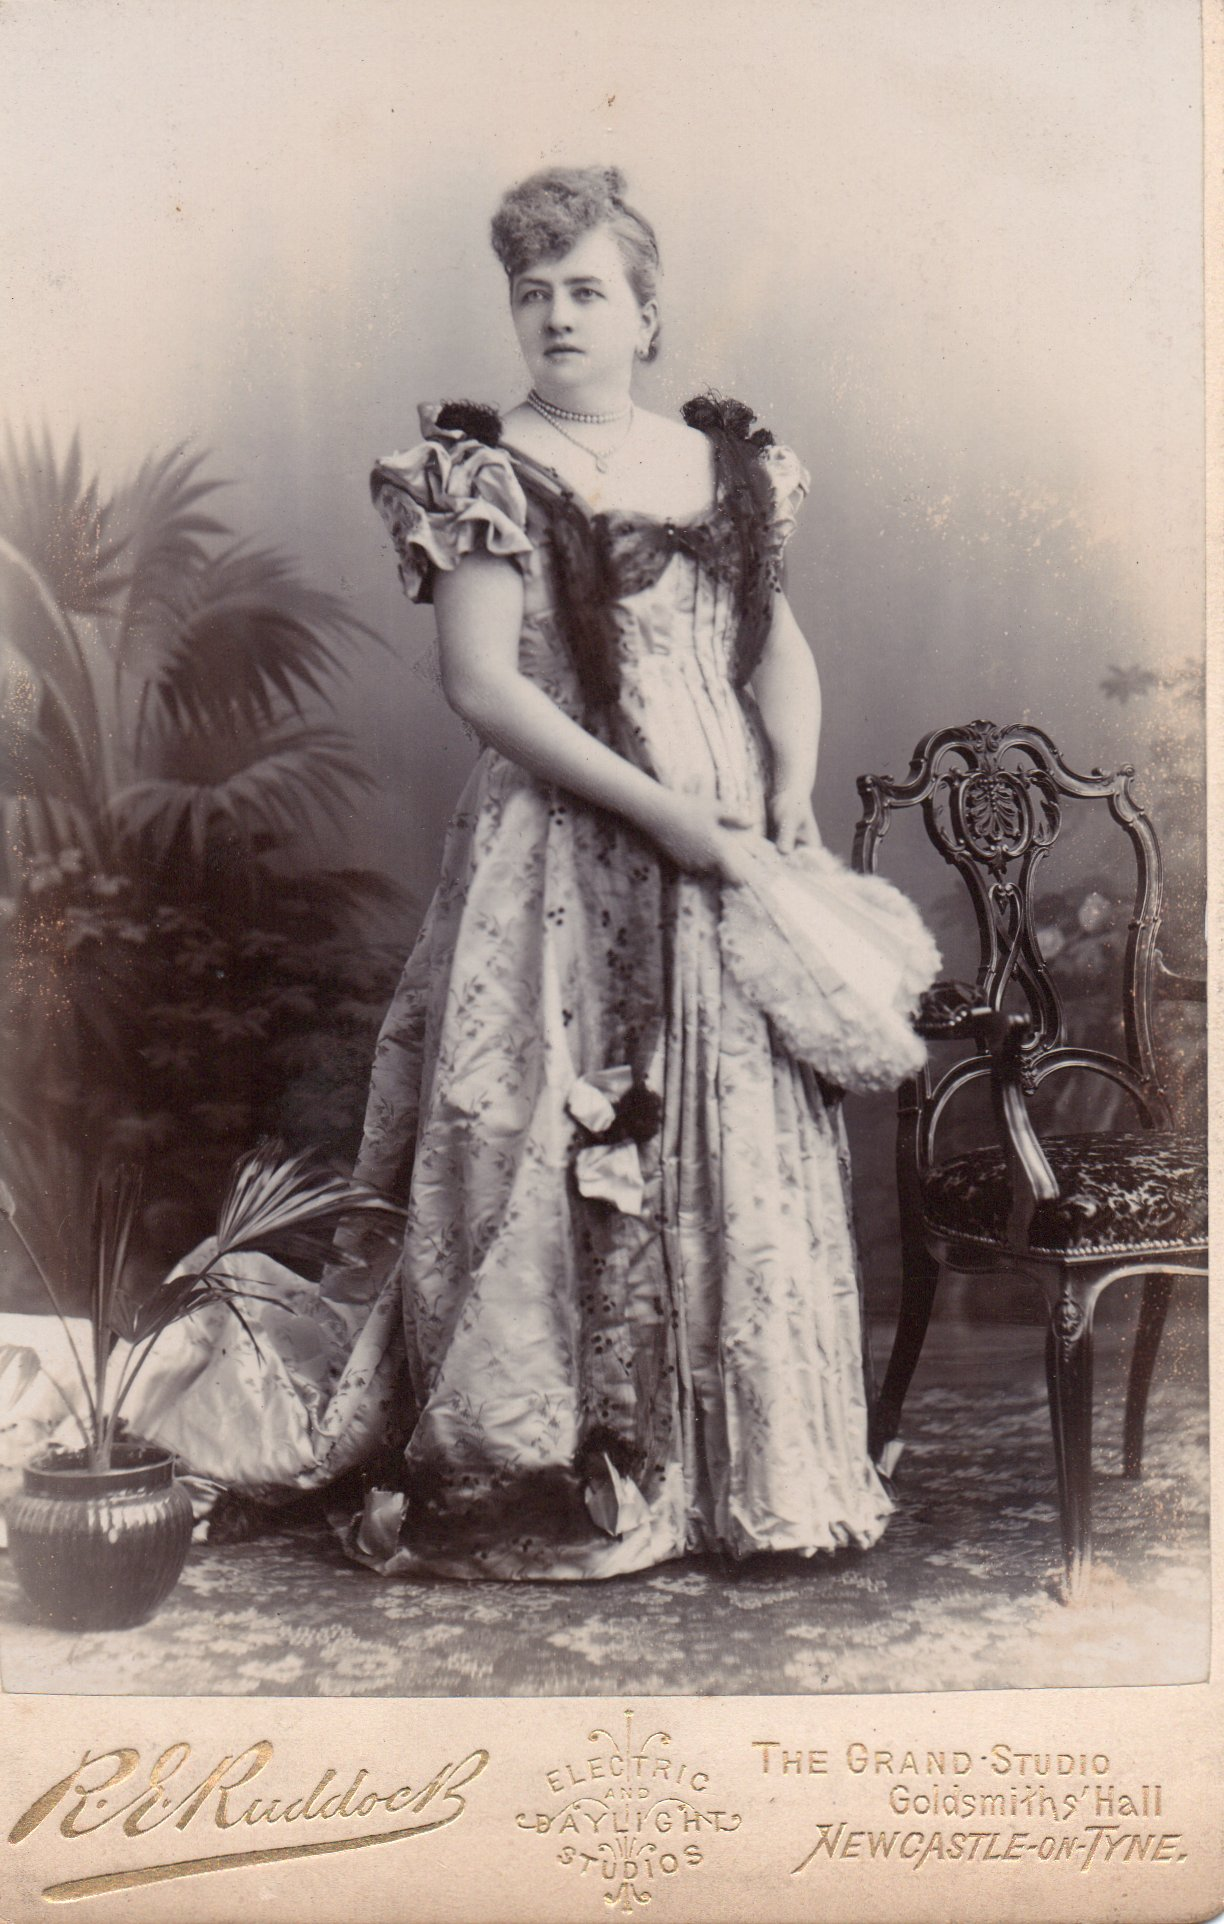 Image of Francis Gibb 1890s formal dress